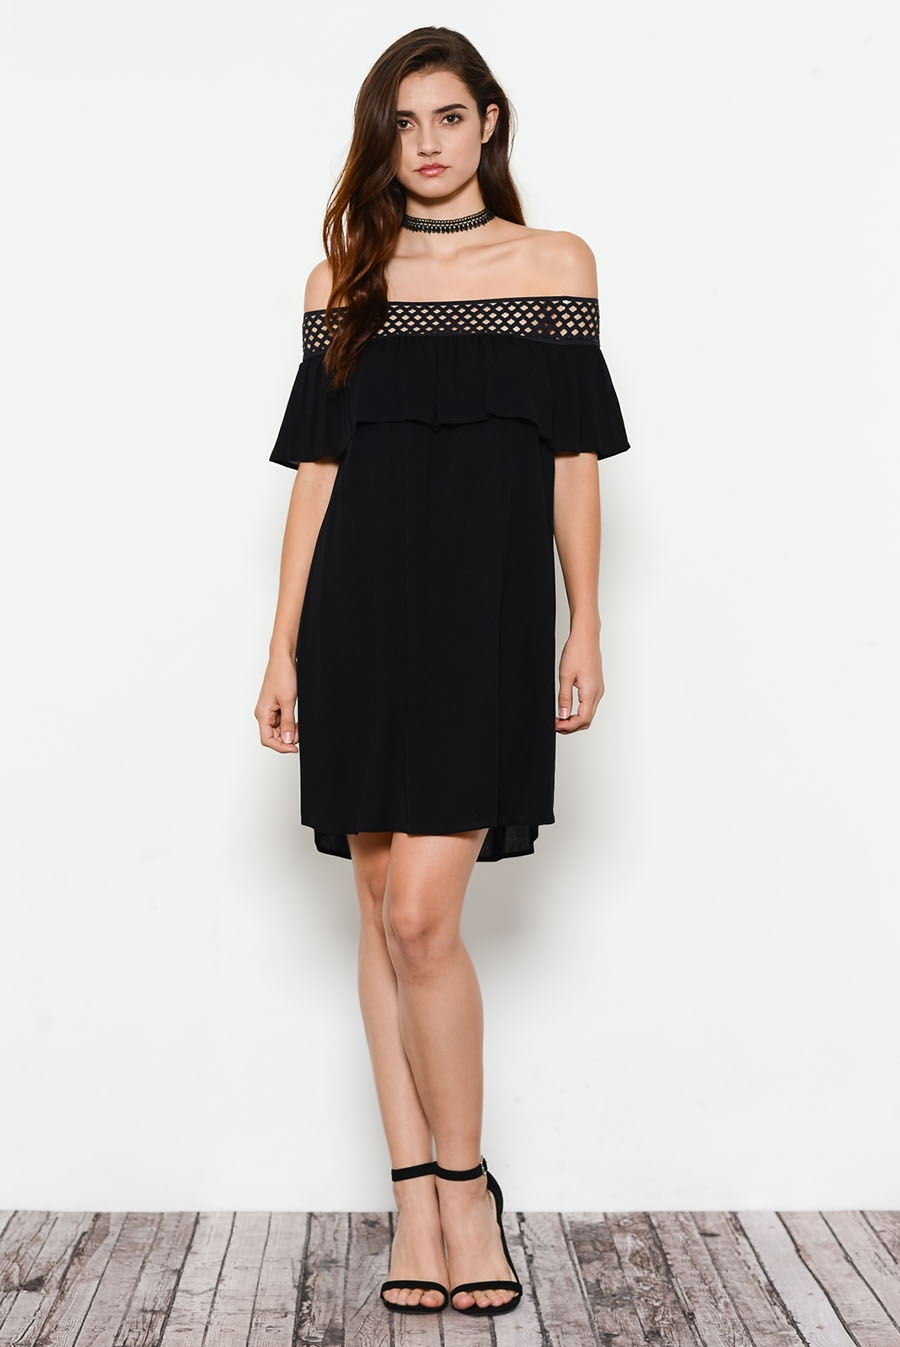 LACE ON SHOULDER RUFFLE DRESS - orangeshine.com